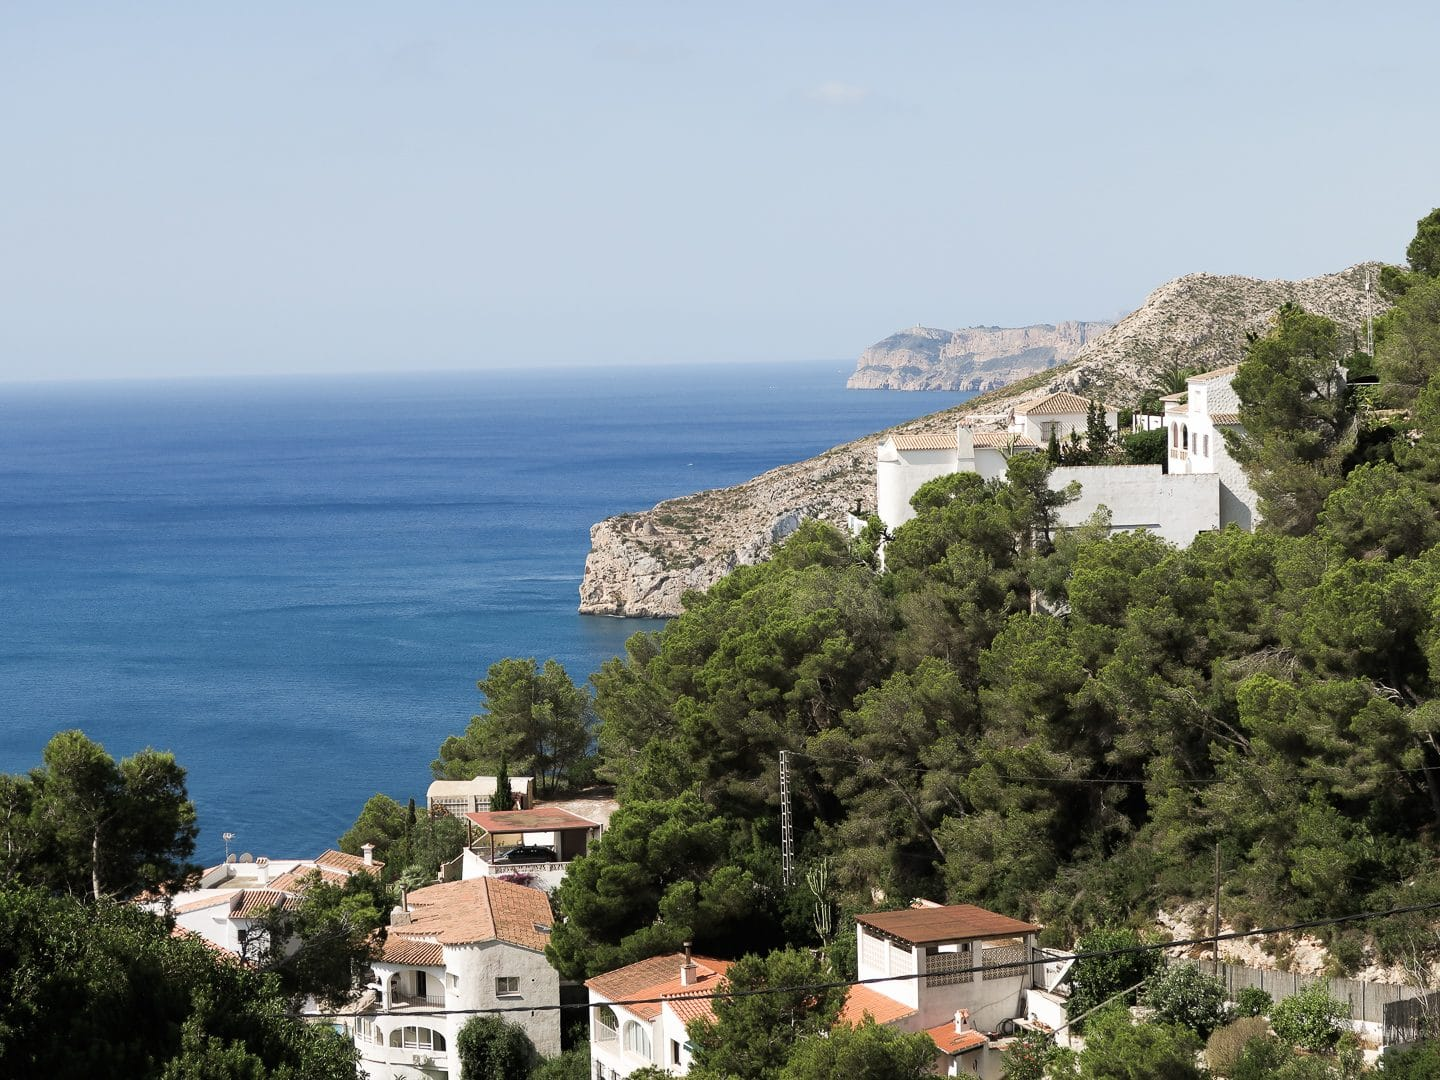 Sea bay overlooked by villas on a mountain